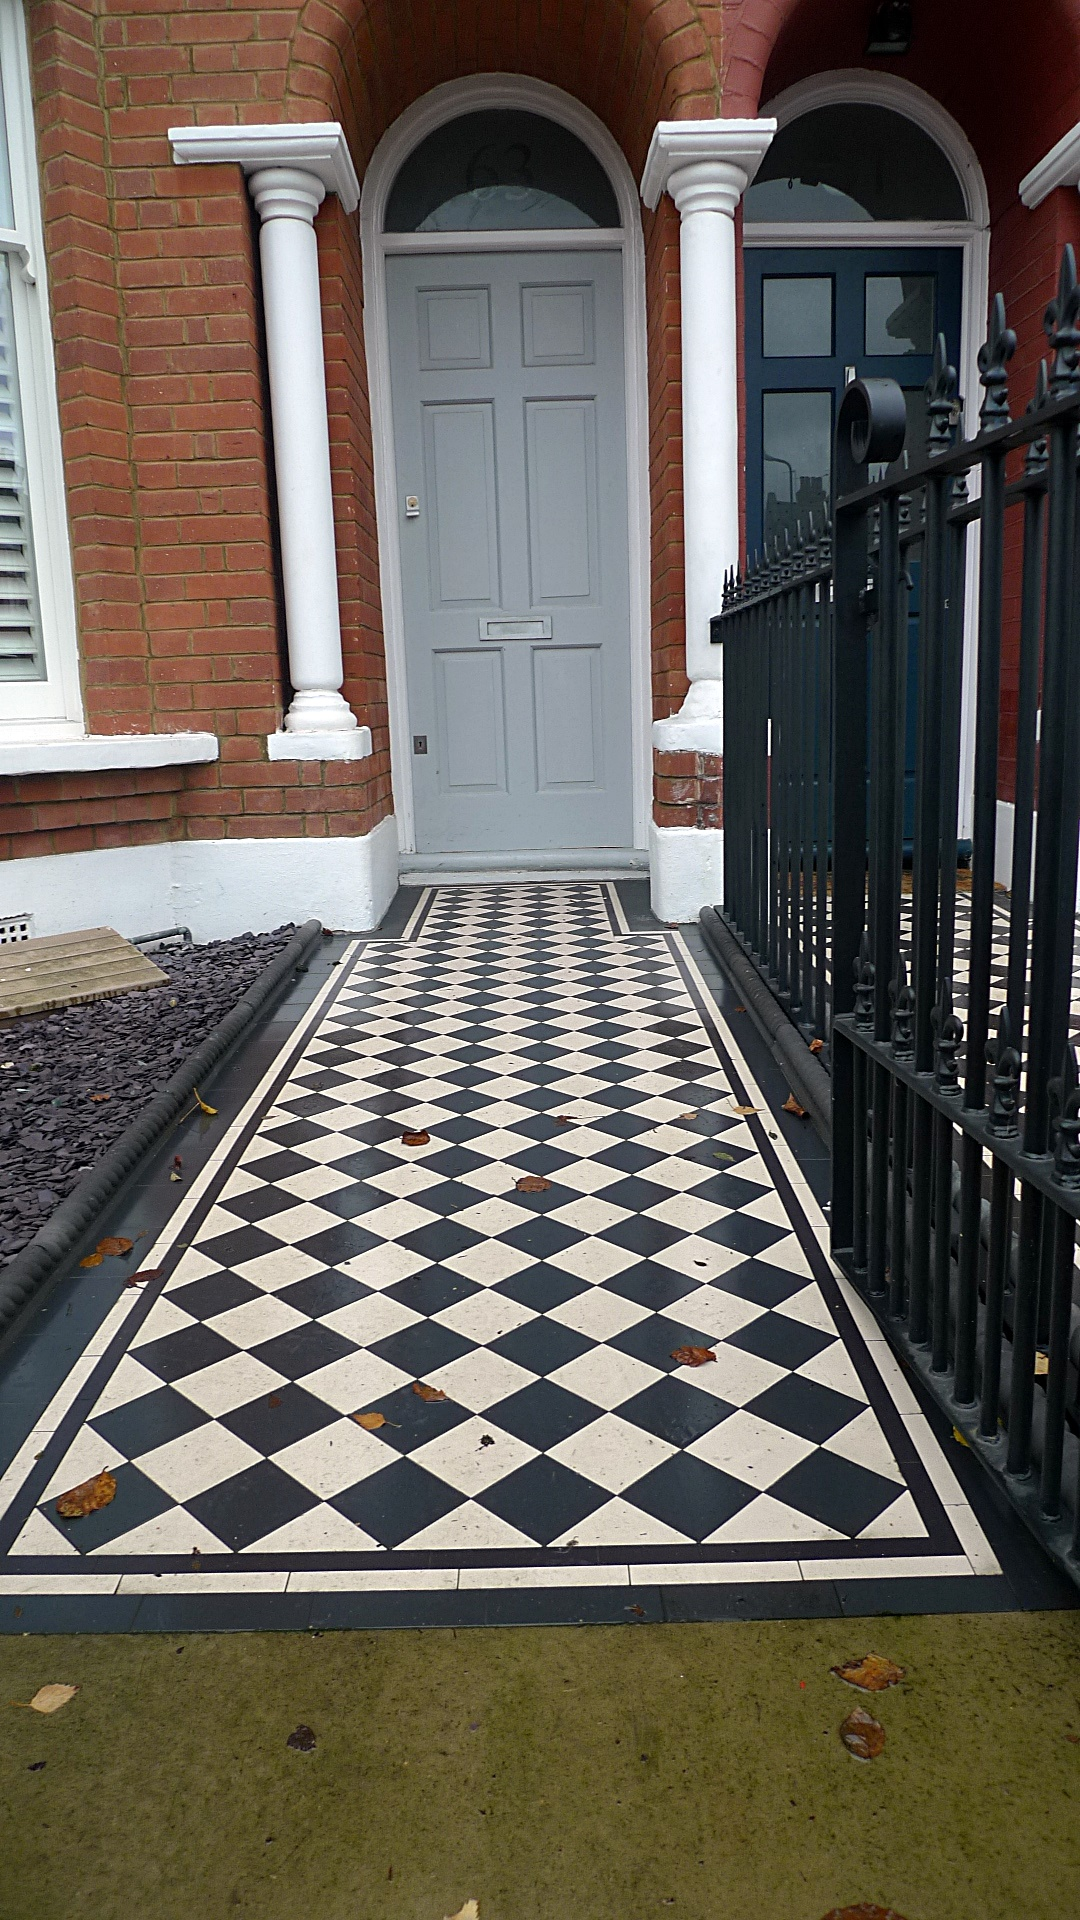 Ornamental stone Victorian mosaic black and white metal rail metal gate charcoal rope edge tiles York stone entrance stone slate Balham Clapham Streatham West Norwood Battersea London